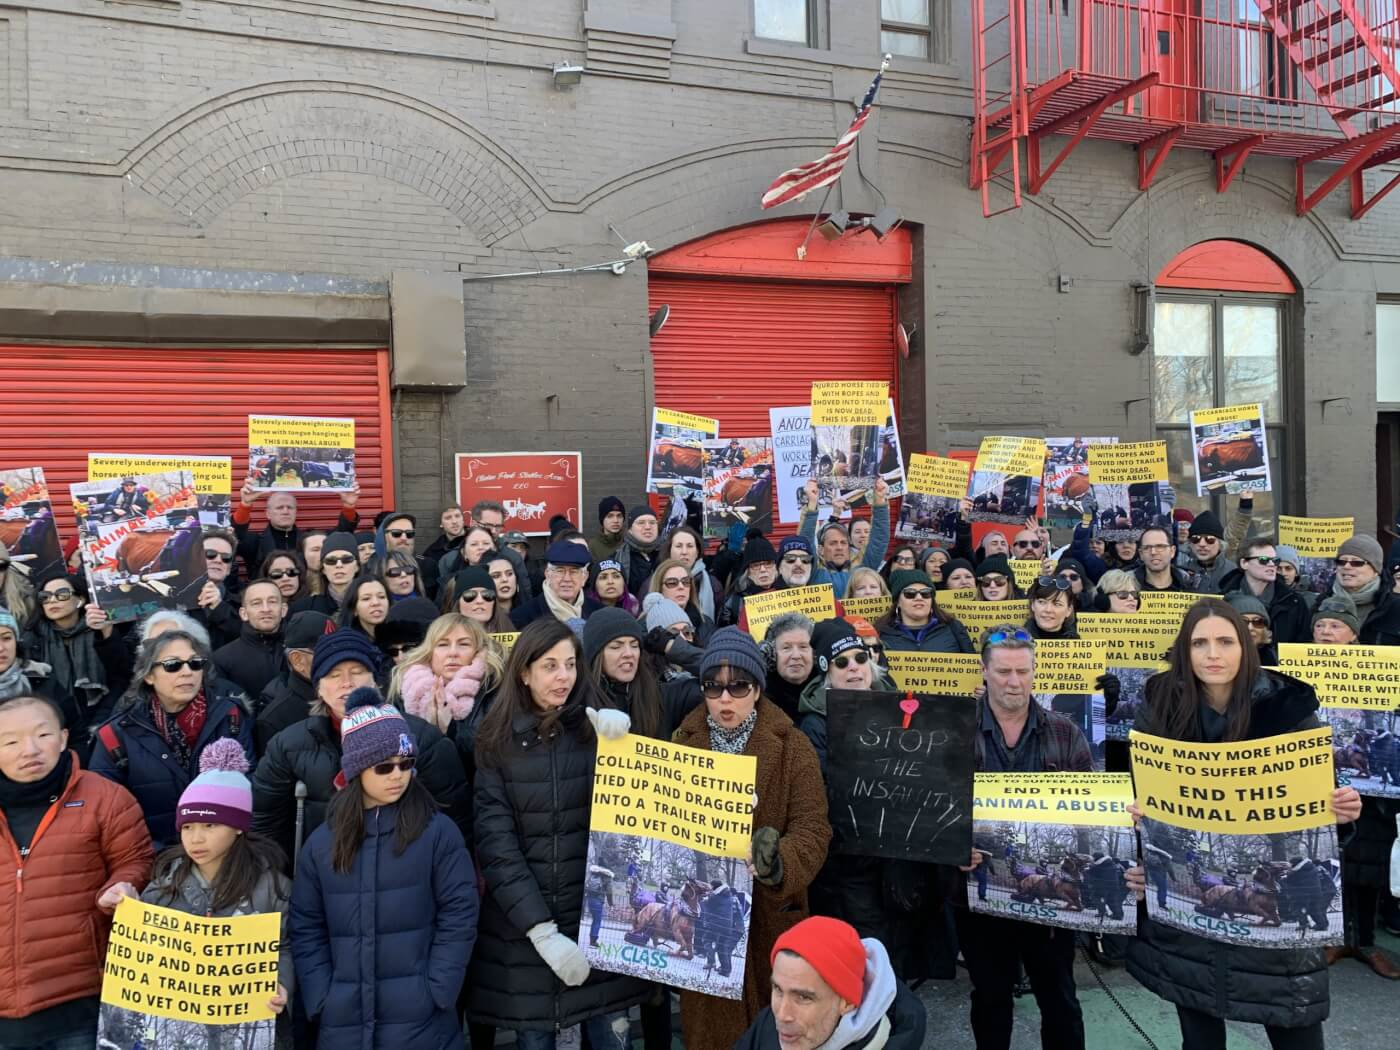 carriage horse dies in NYC, prompting protest